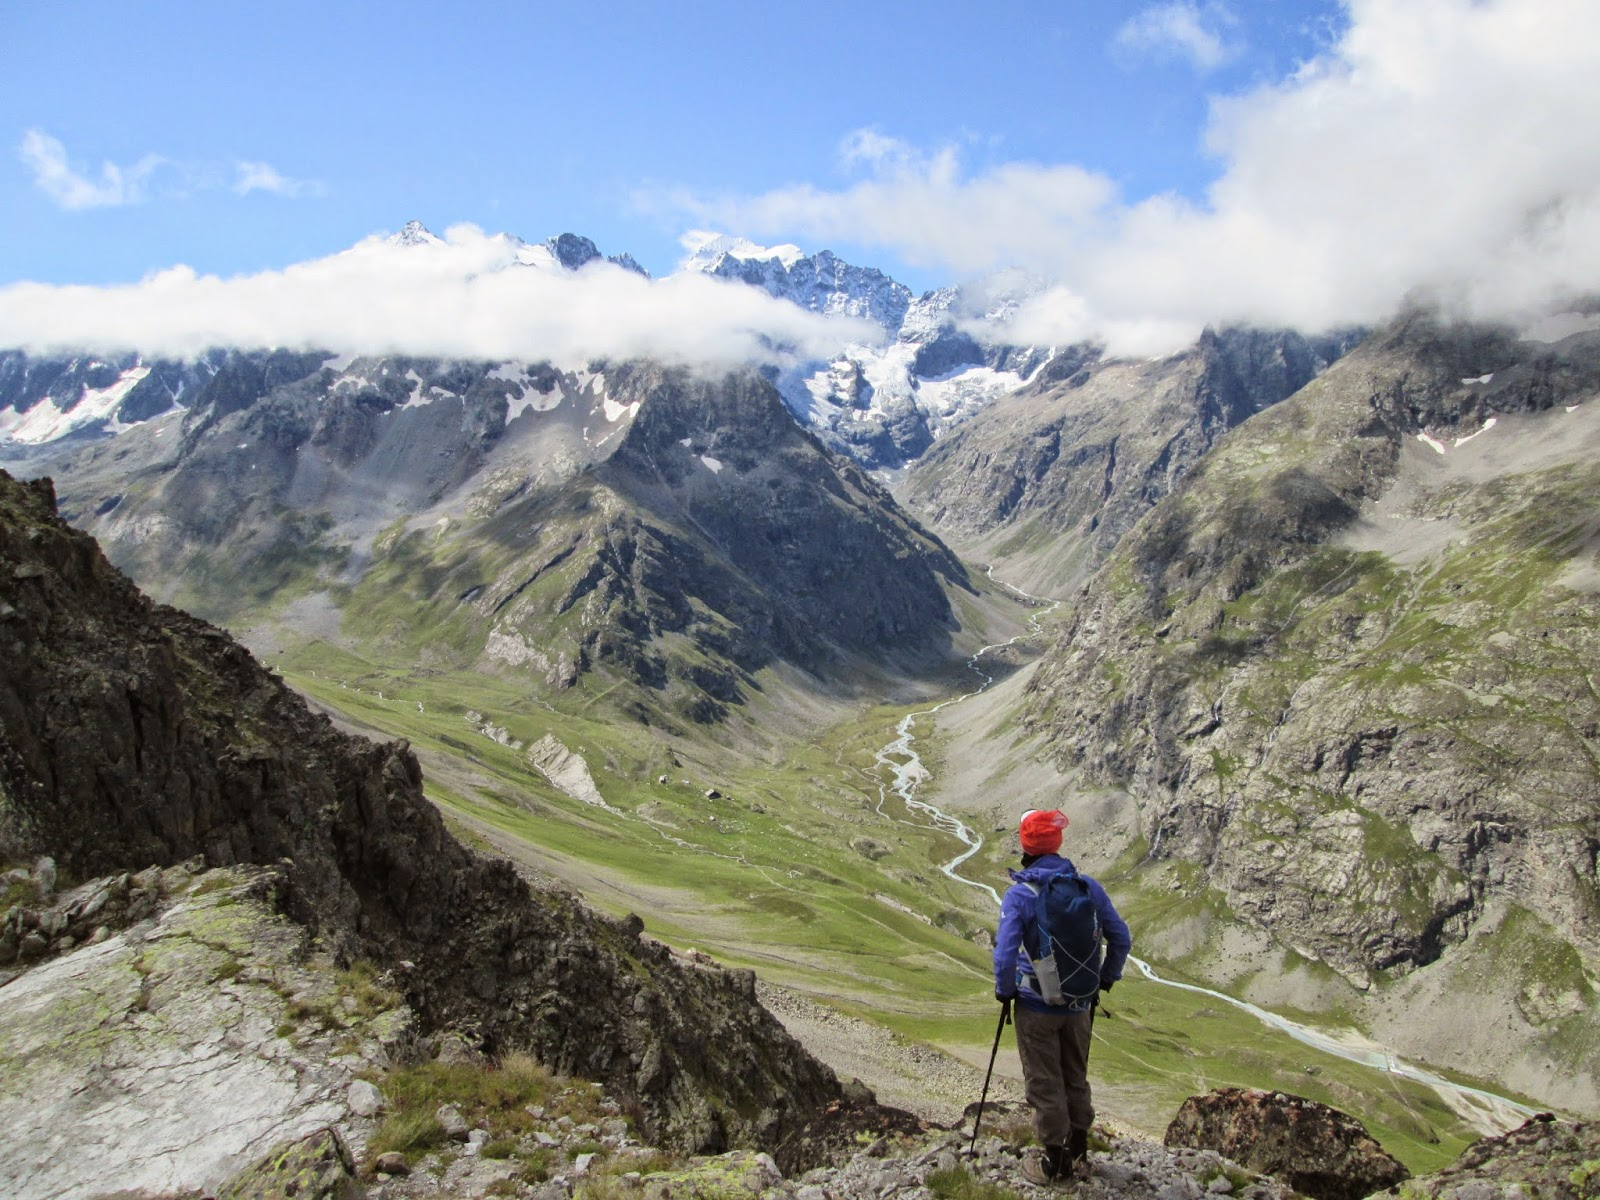 Looking into the Ecrins National Park from the Col du Combeynot, Alps France